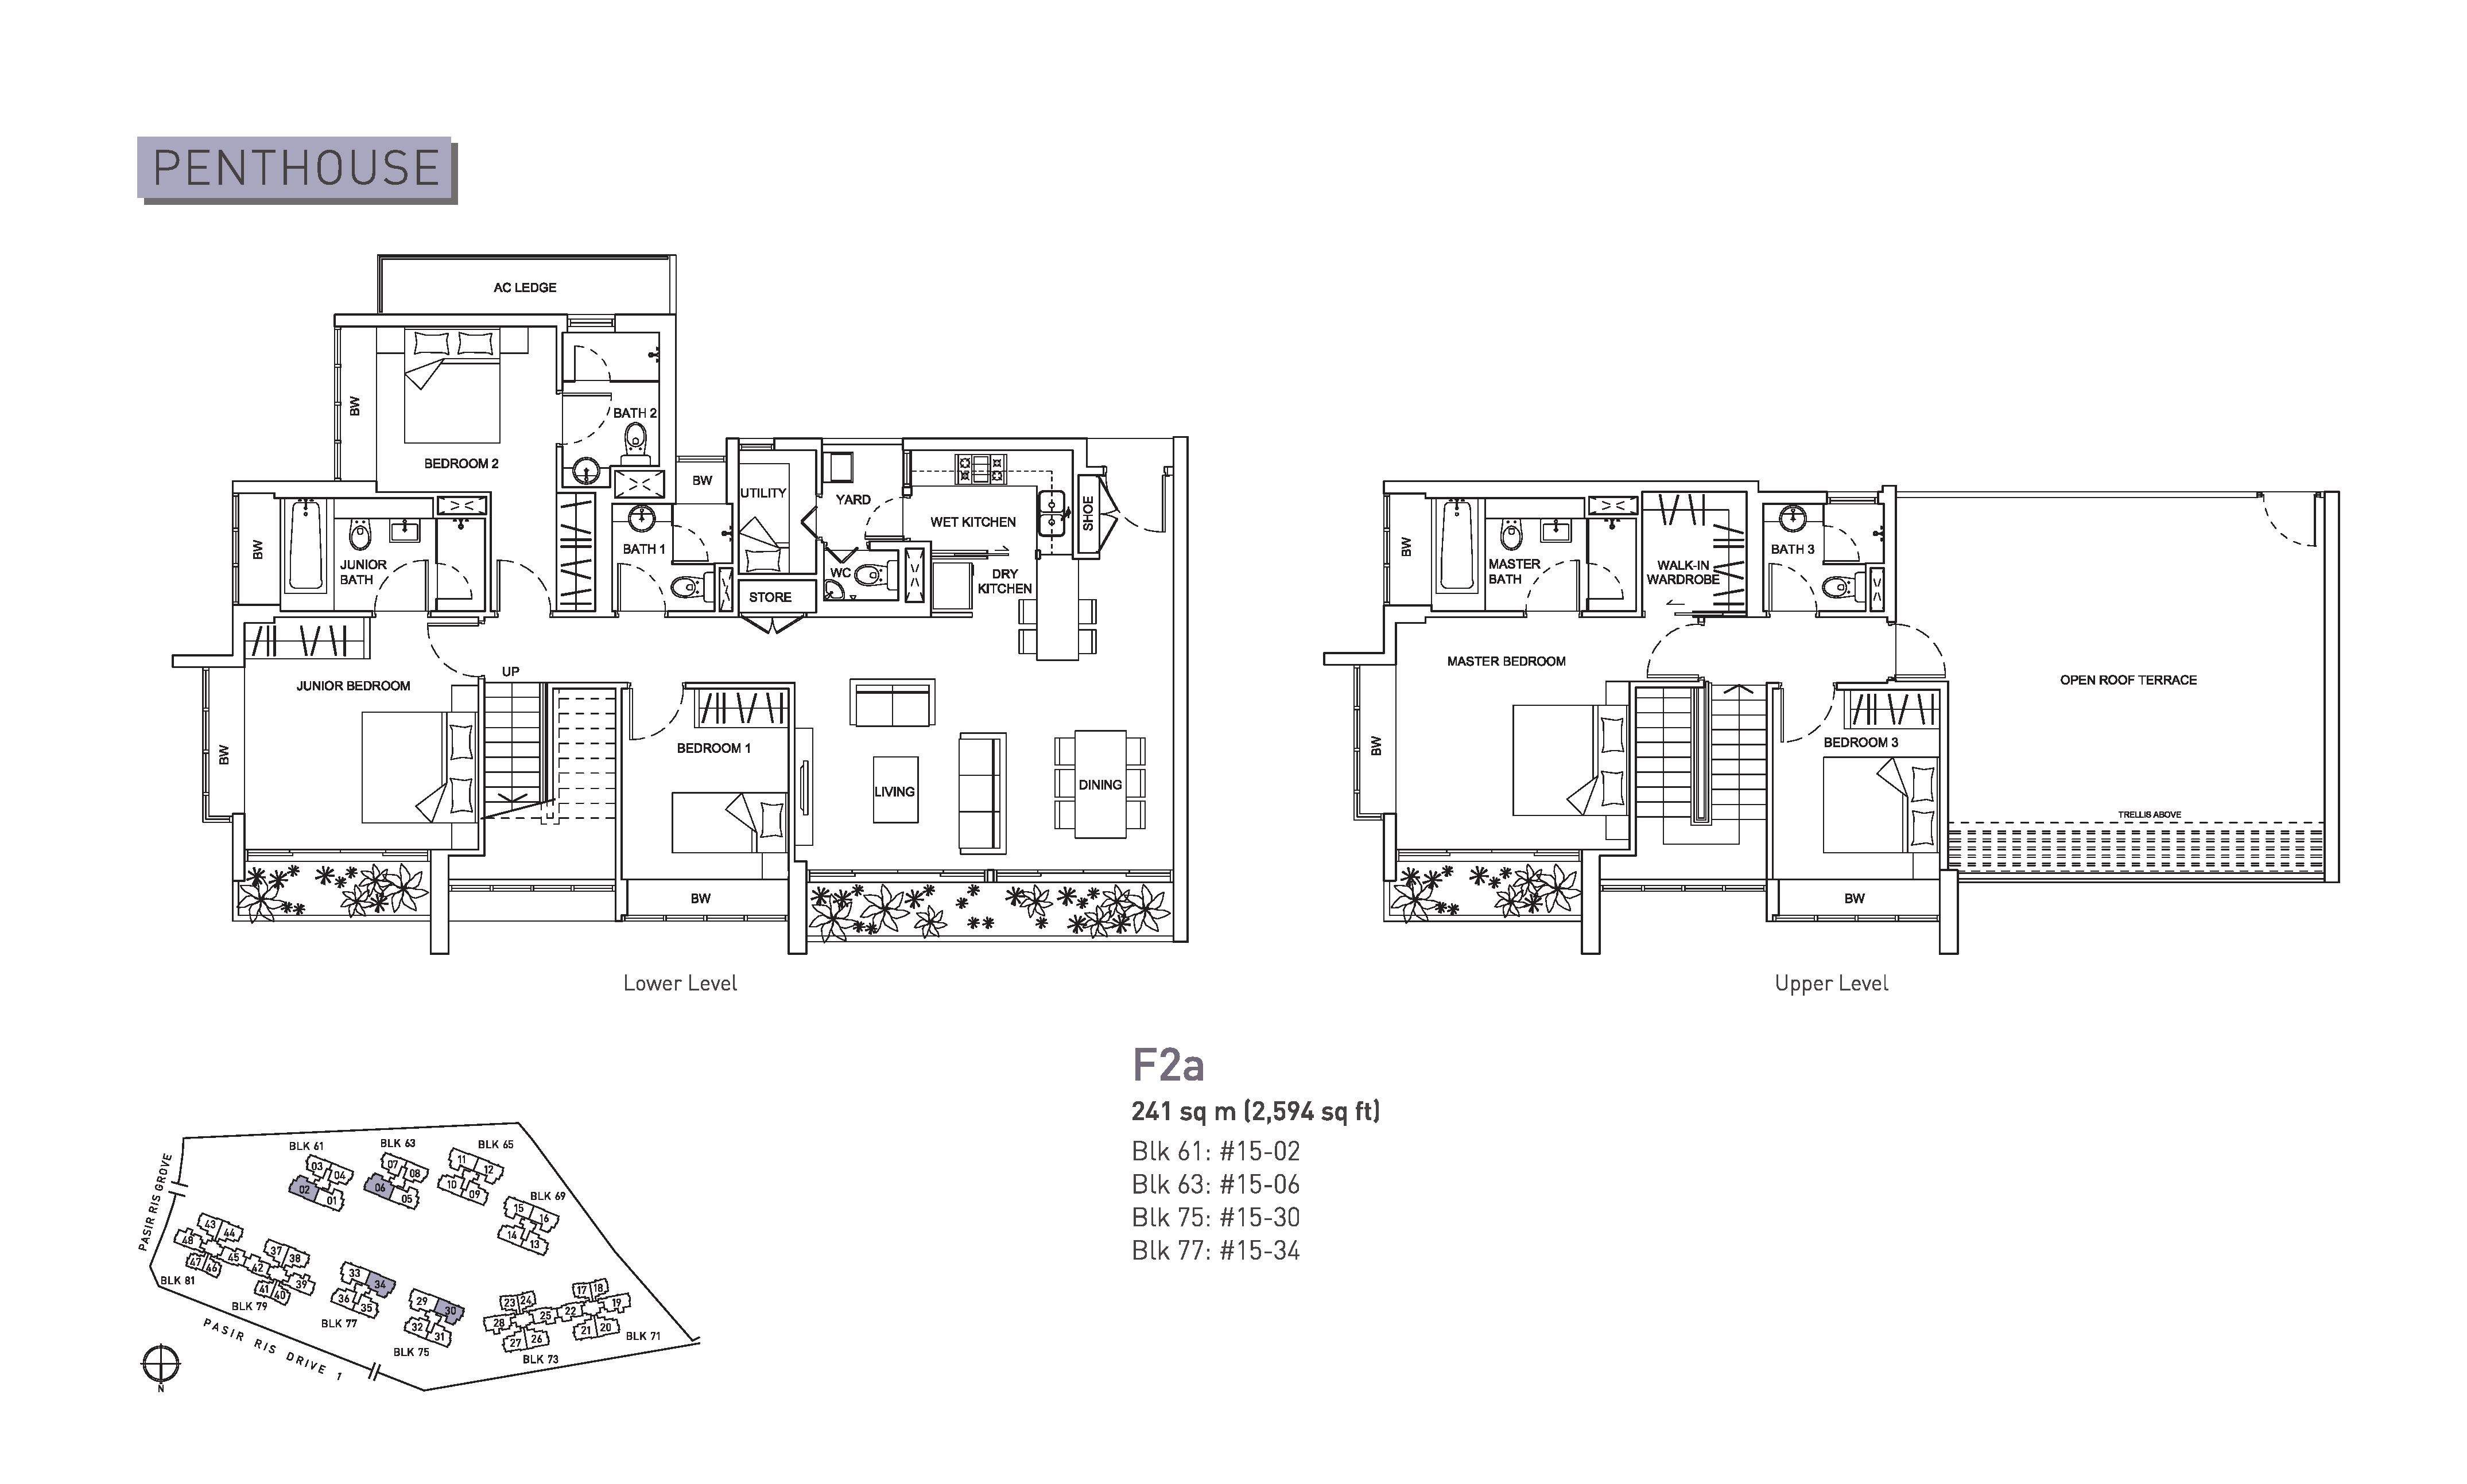 livia condo floor plan condo home plans ideas picture livia condo floor plan condo home plans ideas picture